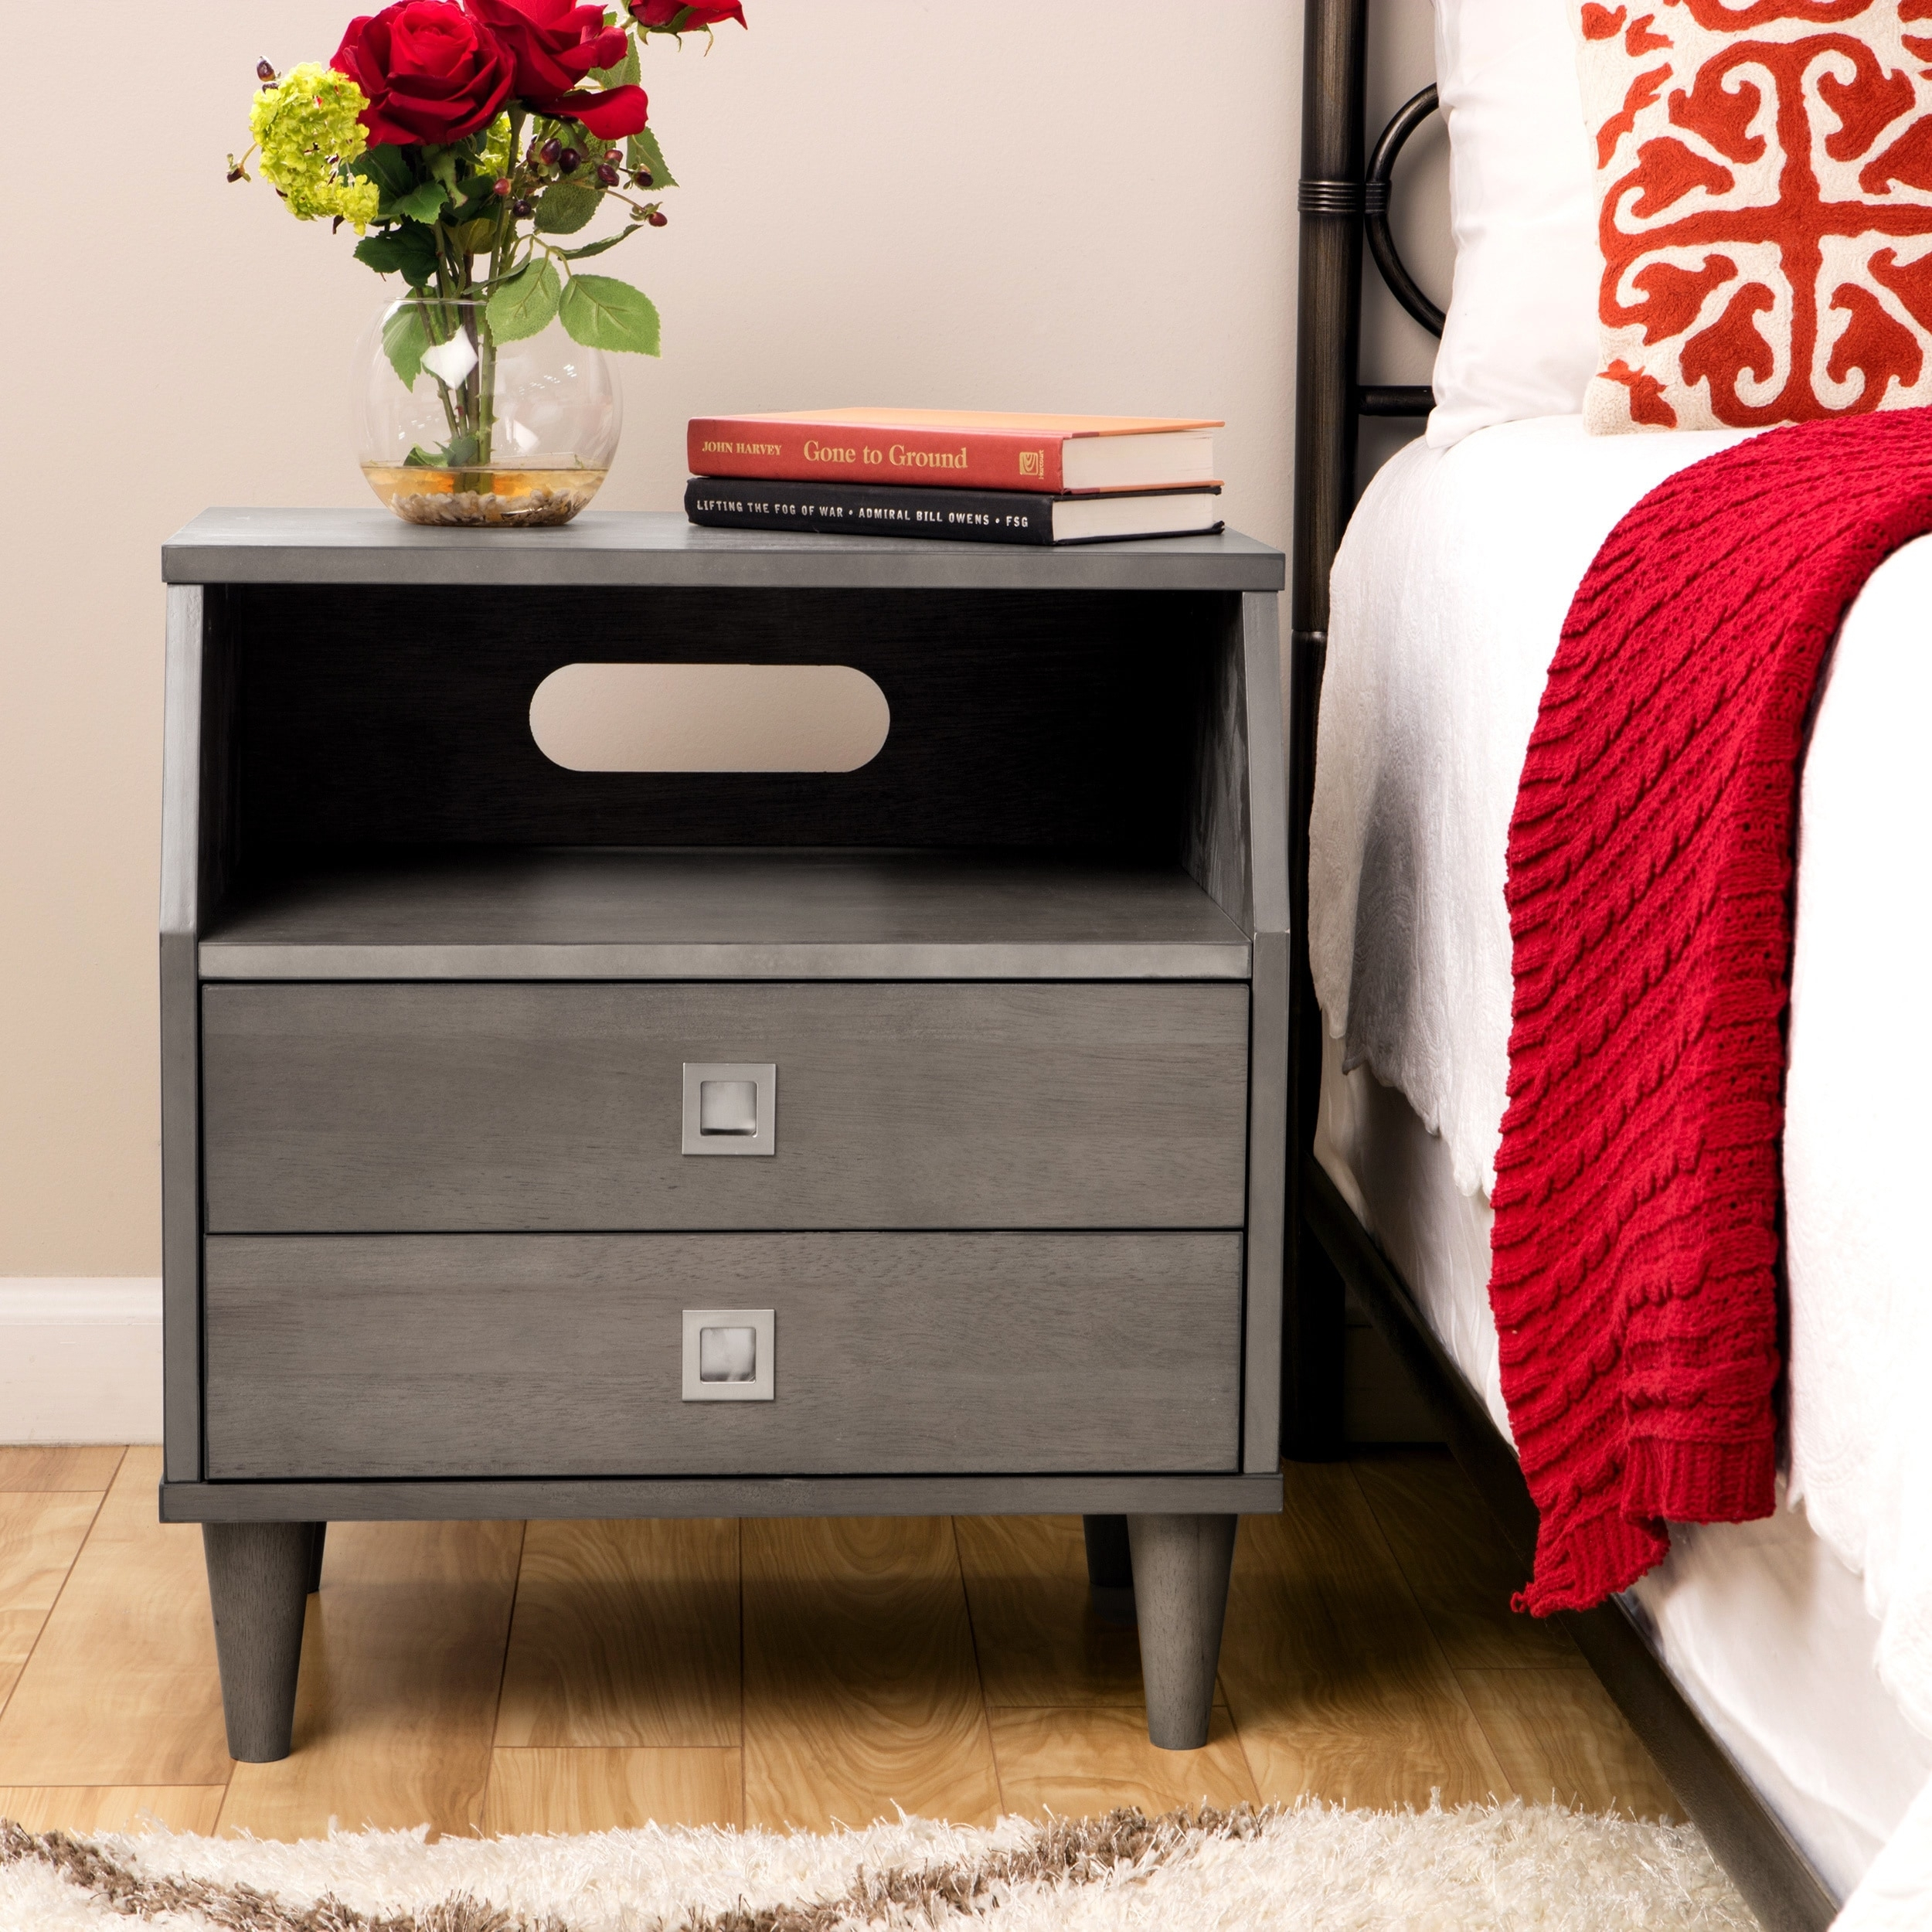 Ikea Hemnes 2 Drawer Nightstand Madison Art Center Design